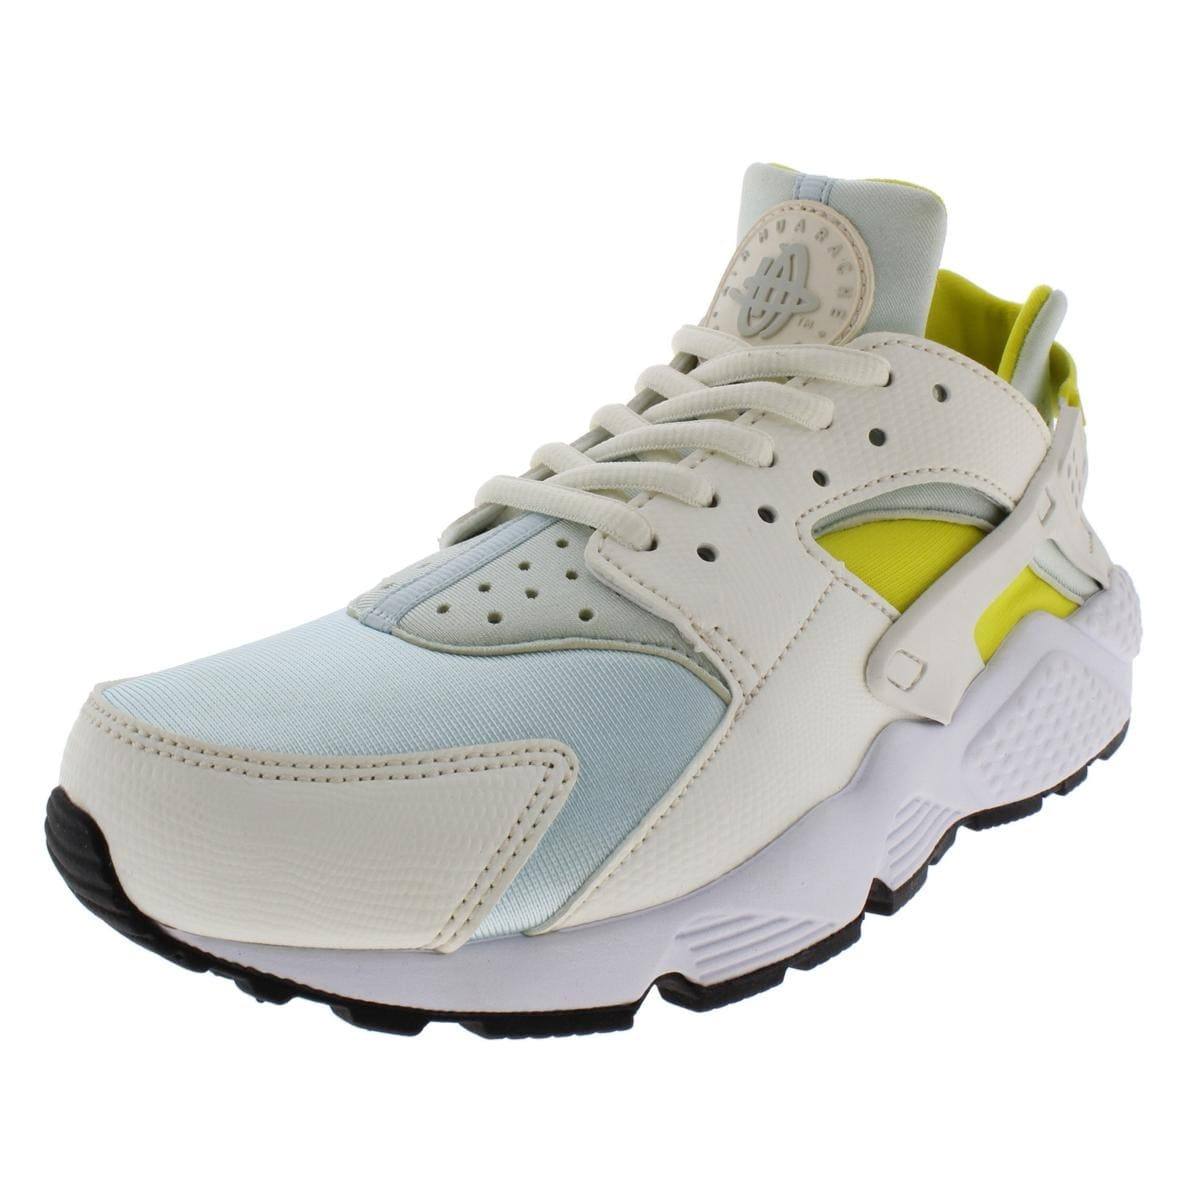 6cb5cf353a39a Shop Nike Womens Air Huarache Run Running Shoes Training Lightweight - Free  Shipping Today - Overstock - 22025622